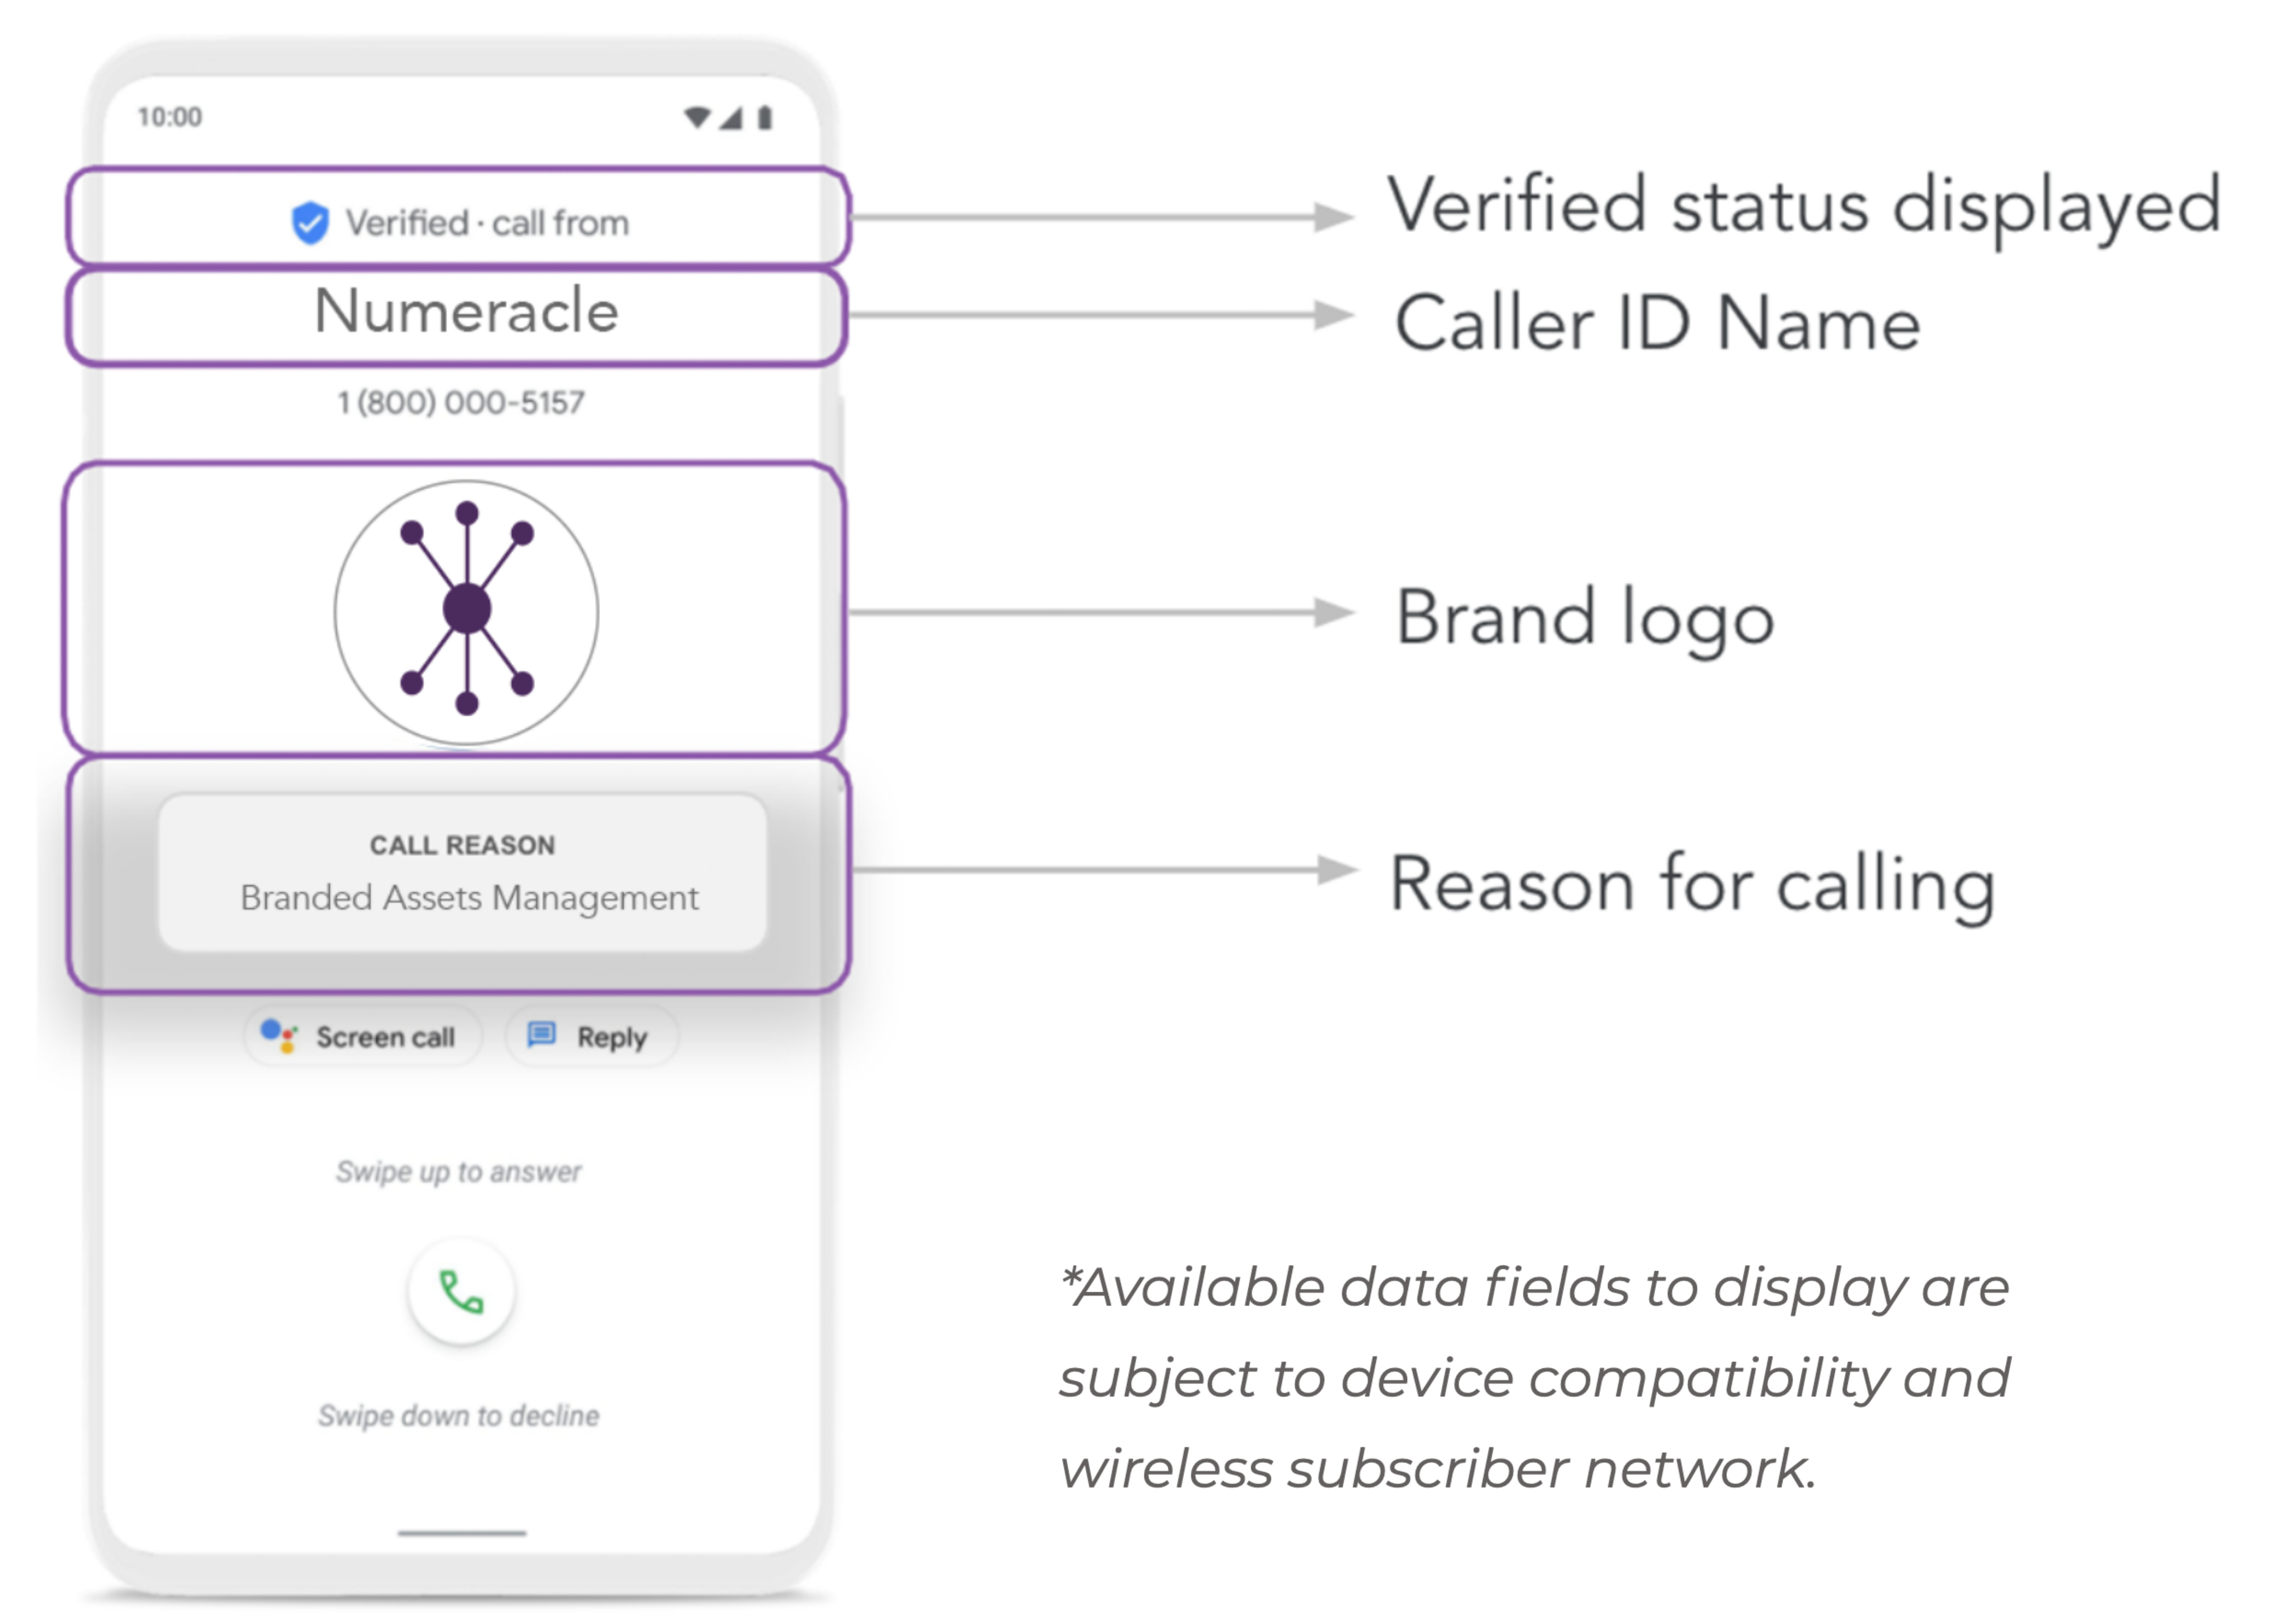 Rich Call Data Elements for branded calling include Logo, Caller ID Name, and Custom Call Reason